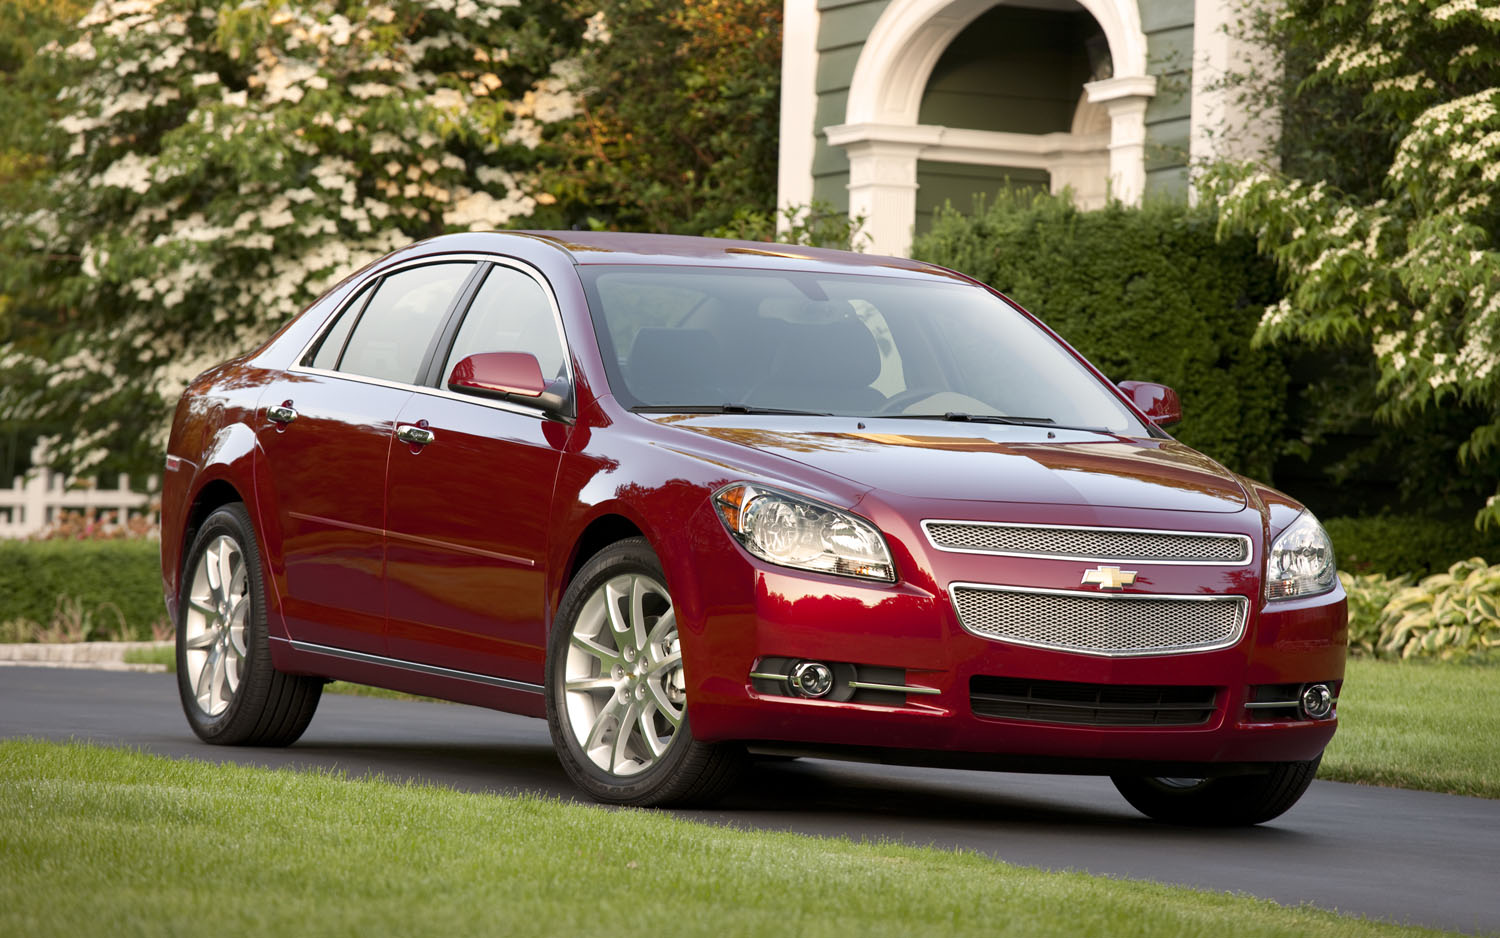 2012 Chevrolet Malibu Ltz Front Right Angle1